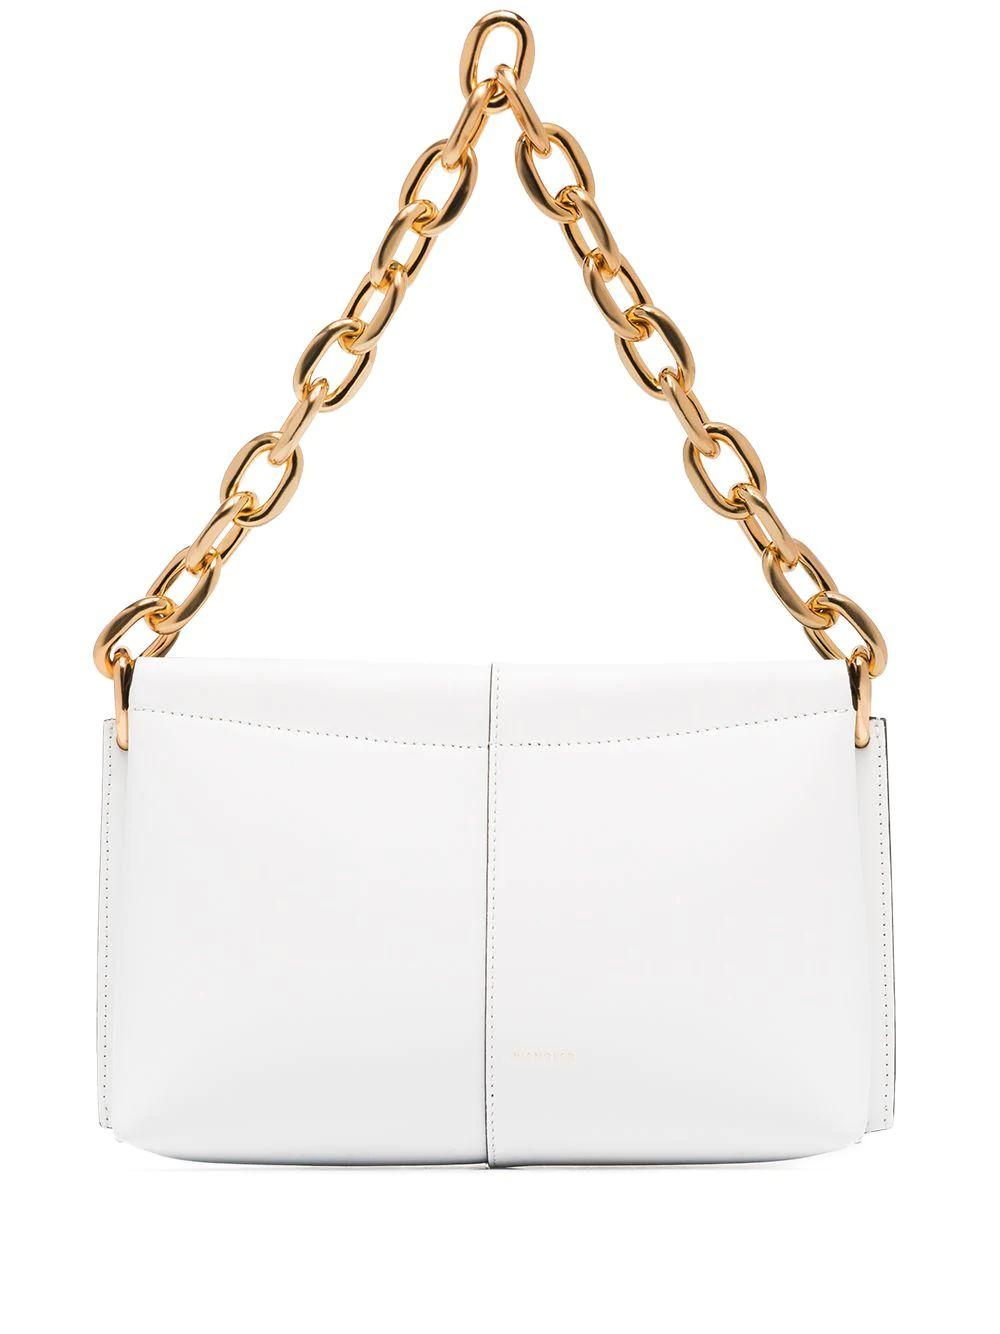 Carly Mini Bag Item # CARLY-CHAIN